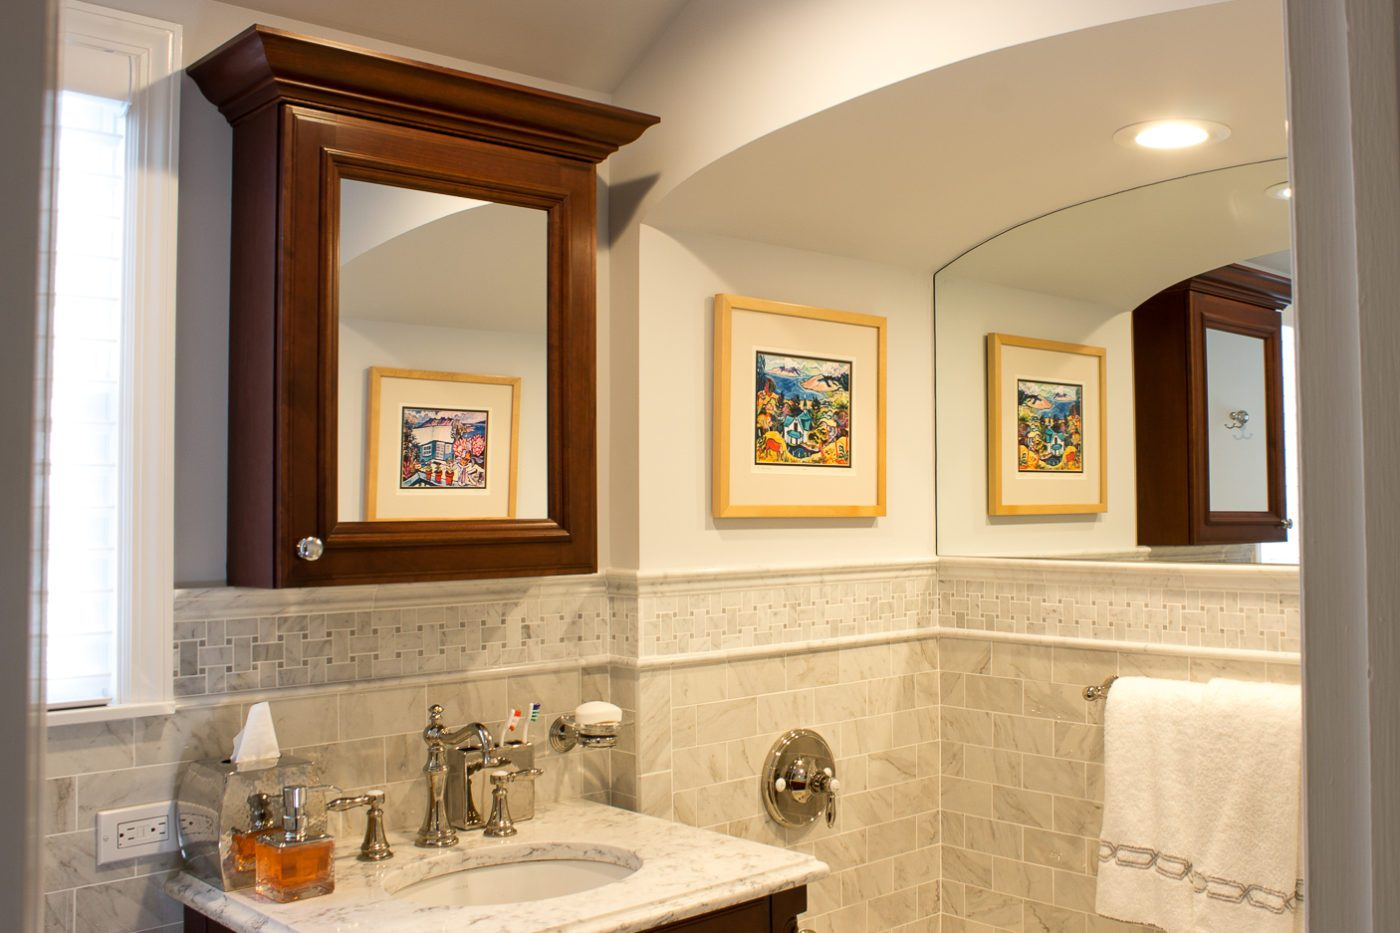 What not to do during a bathroom remodel